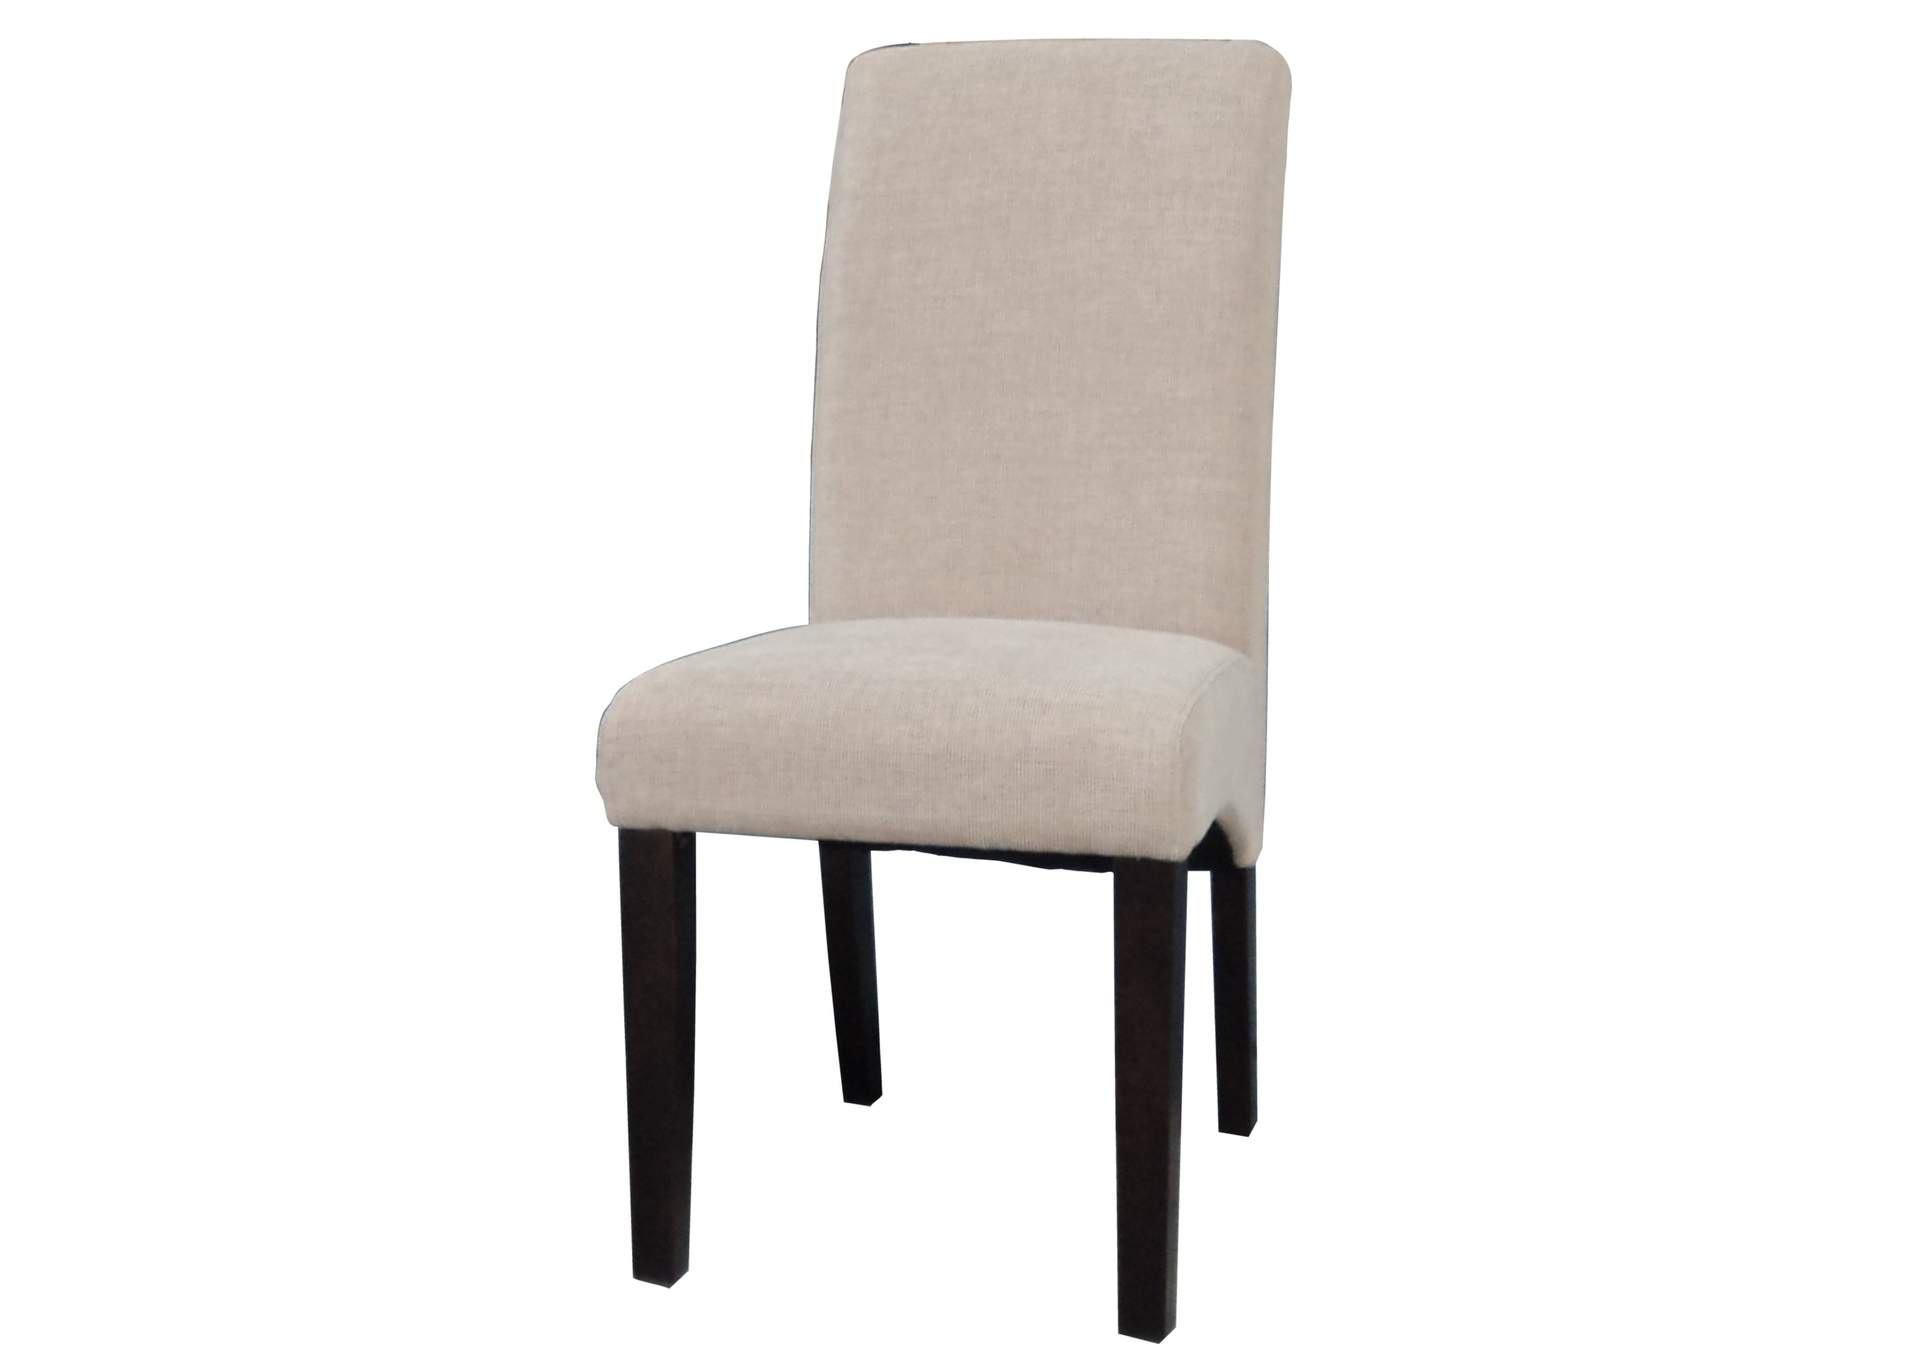 Marcella Satin Espresso Arch Base Parson Side Chair (Set of 2),Chintaly Imports